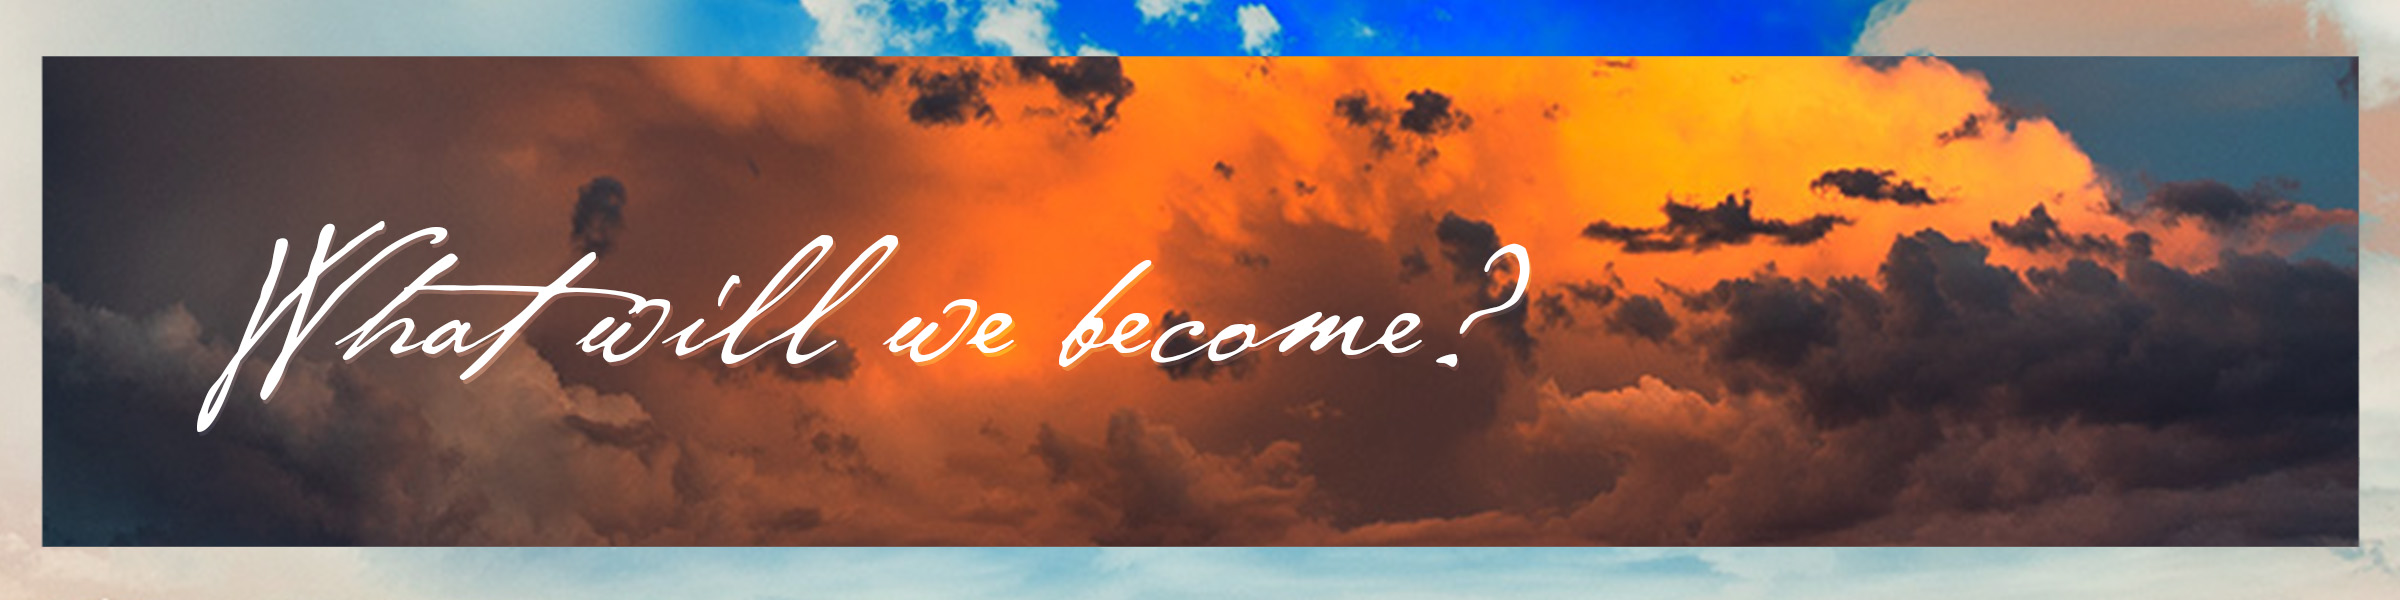 TGC Chelsea _ Teaching Page Series Graphic (What Will We Become).jpg